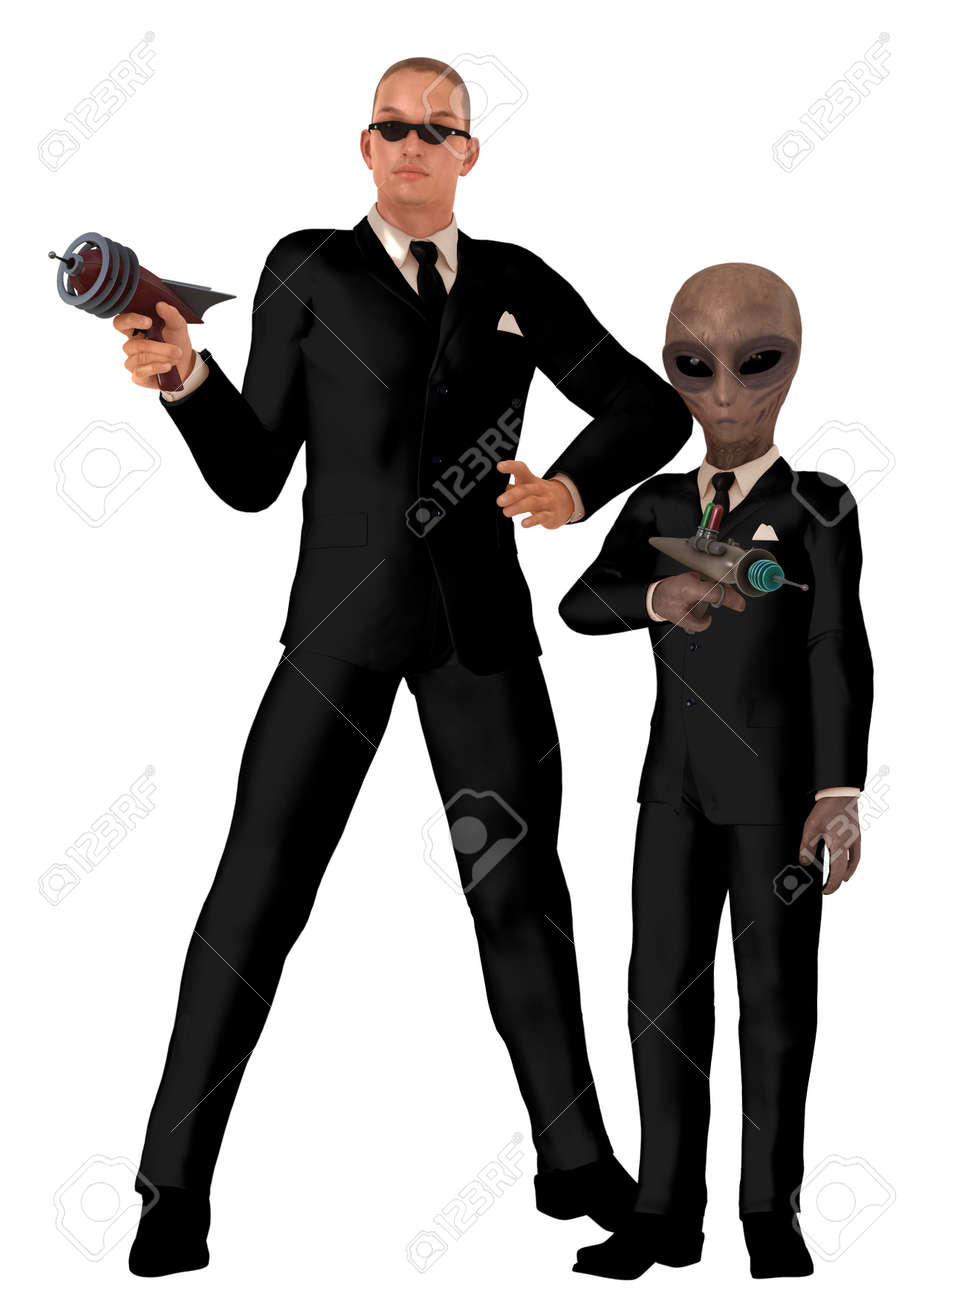 bac7016a97 Stock Photo - Two men in black one human with sunglasses and the other  alien both wearing identical black suits and neckties with white shirts and  carrying ...